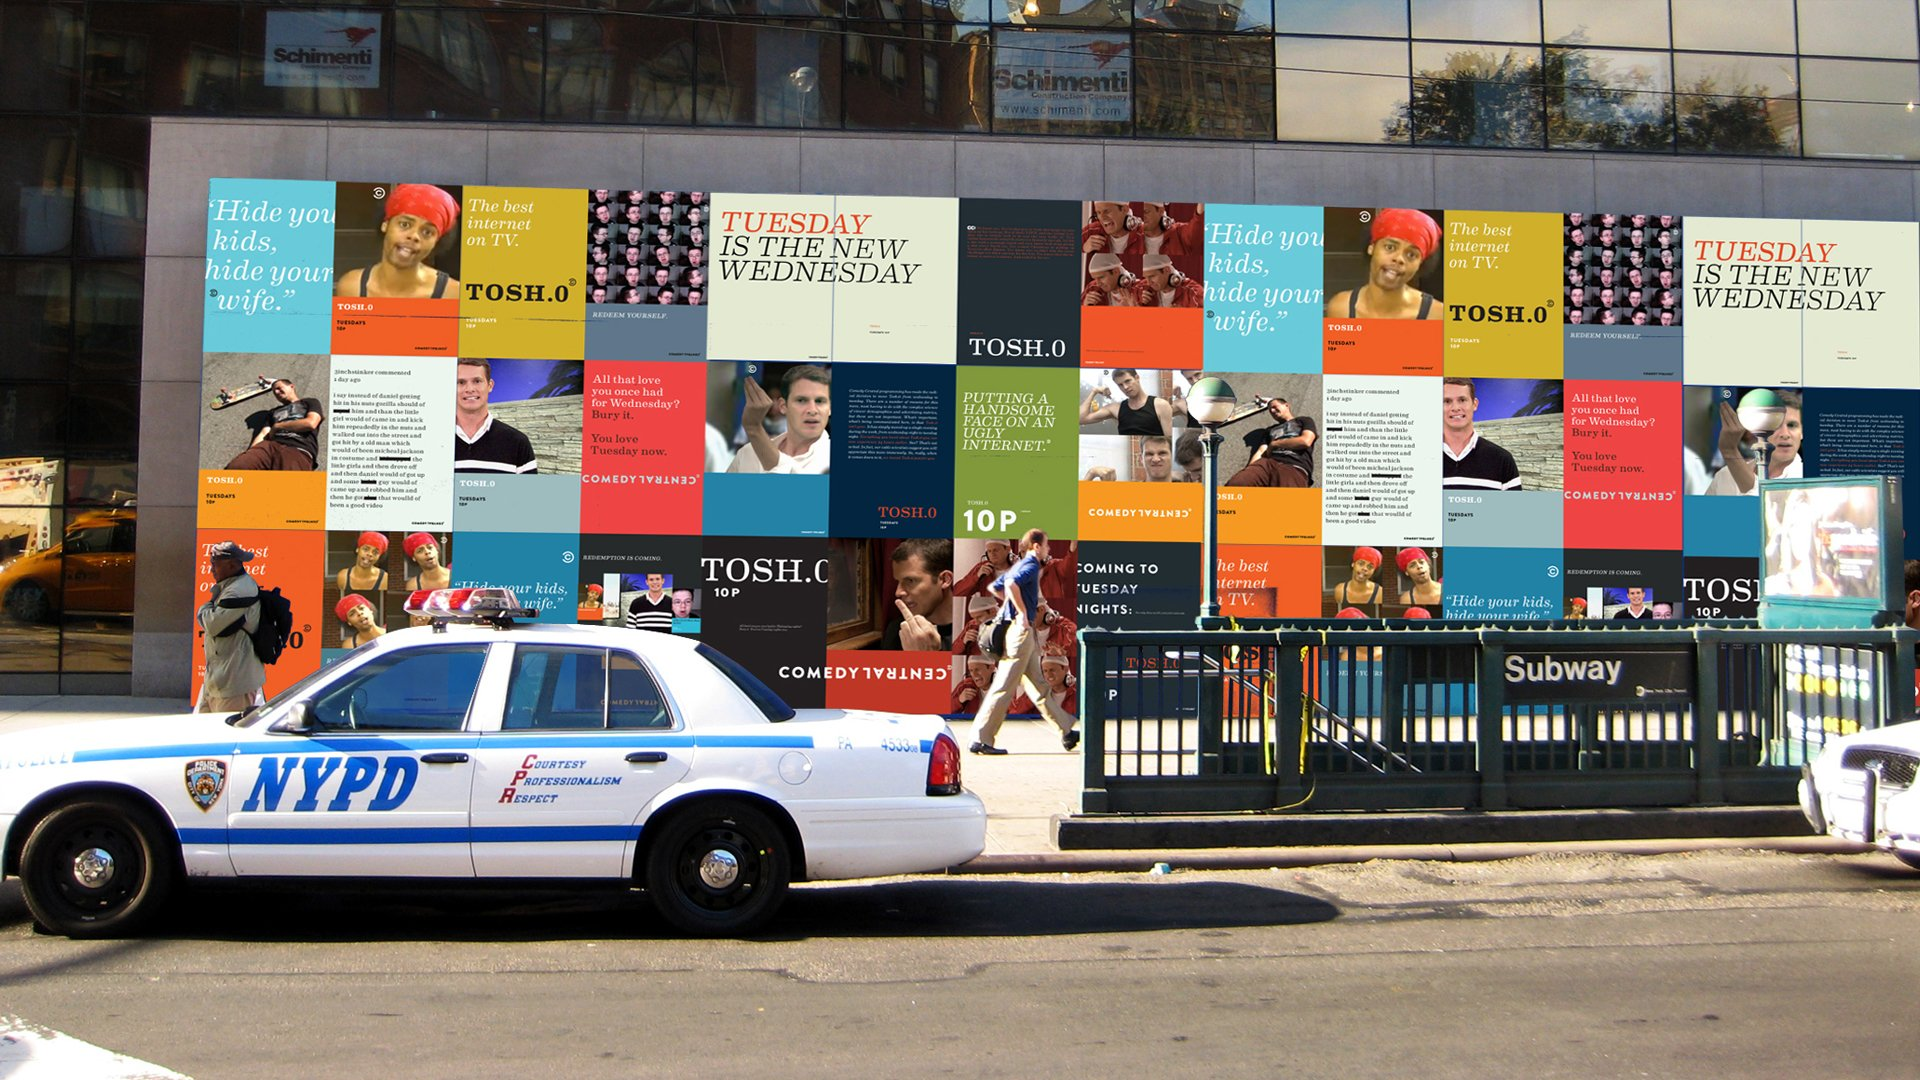 Comedy Central outdoor branding